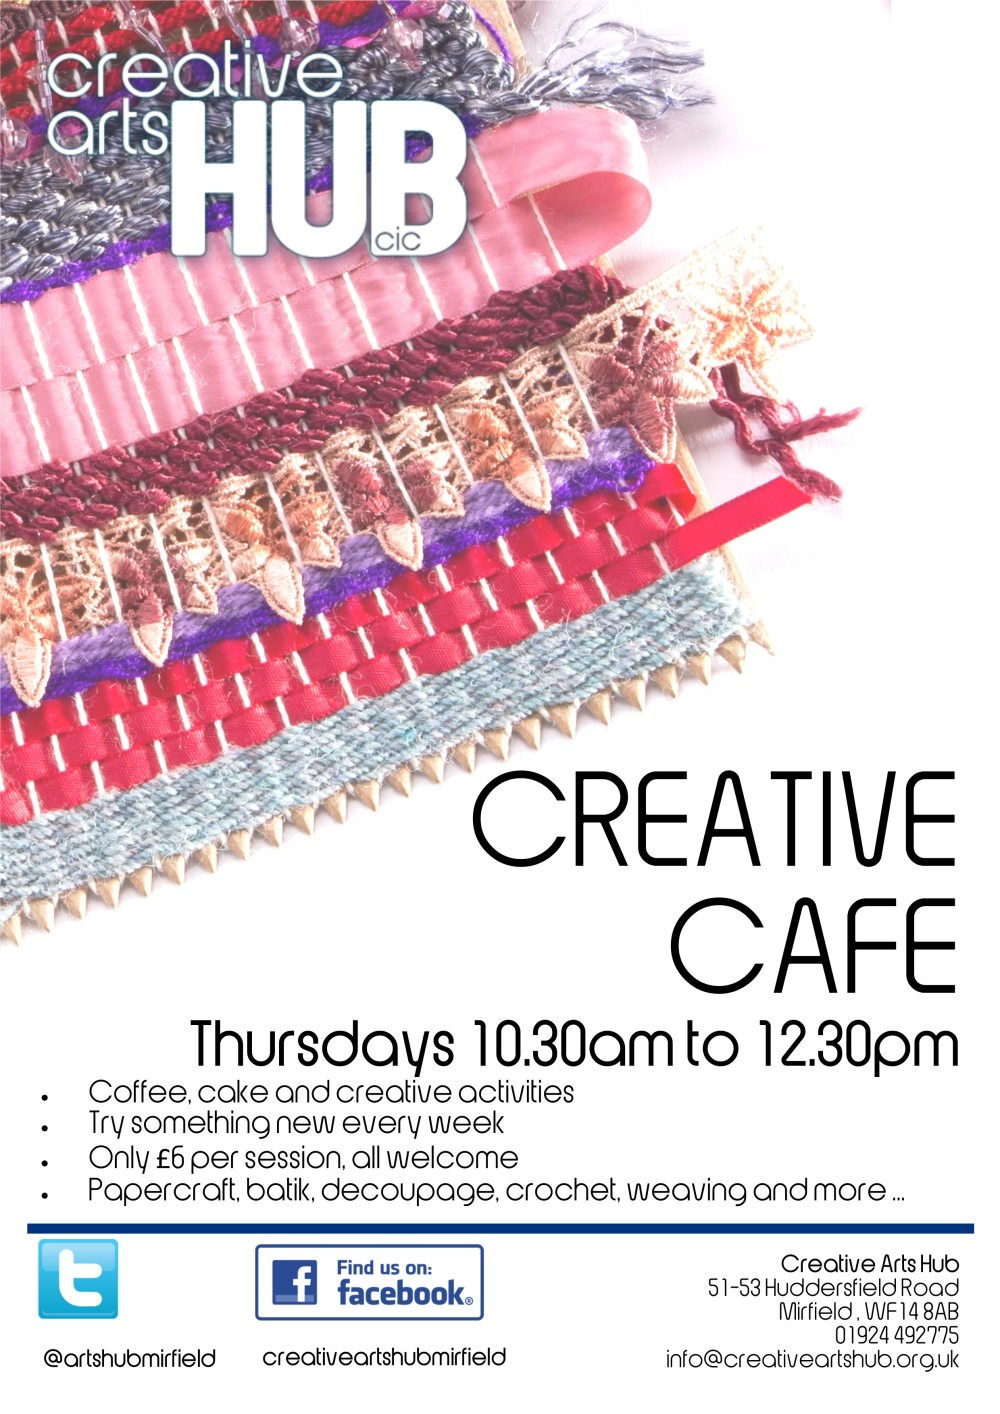 CAH Creative Cafe new price £6